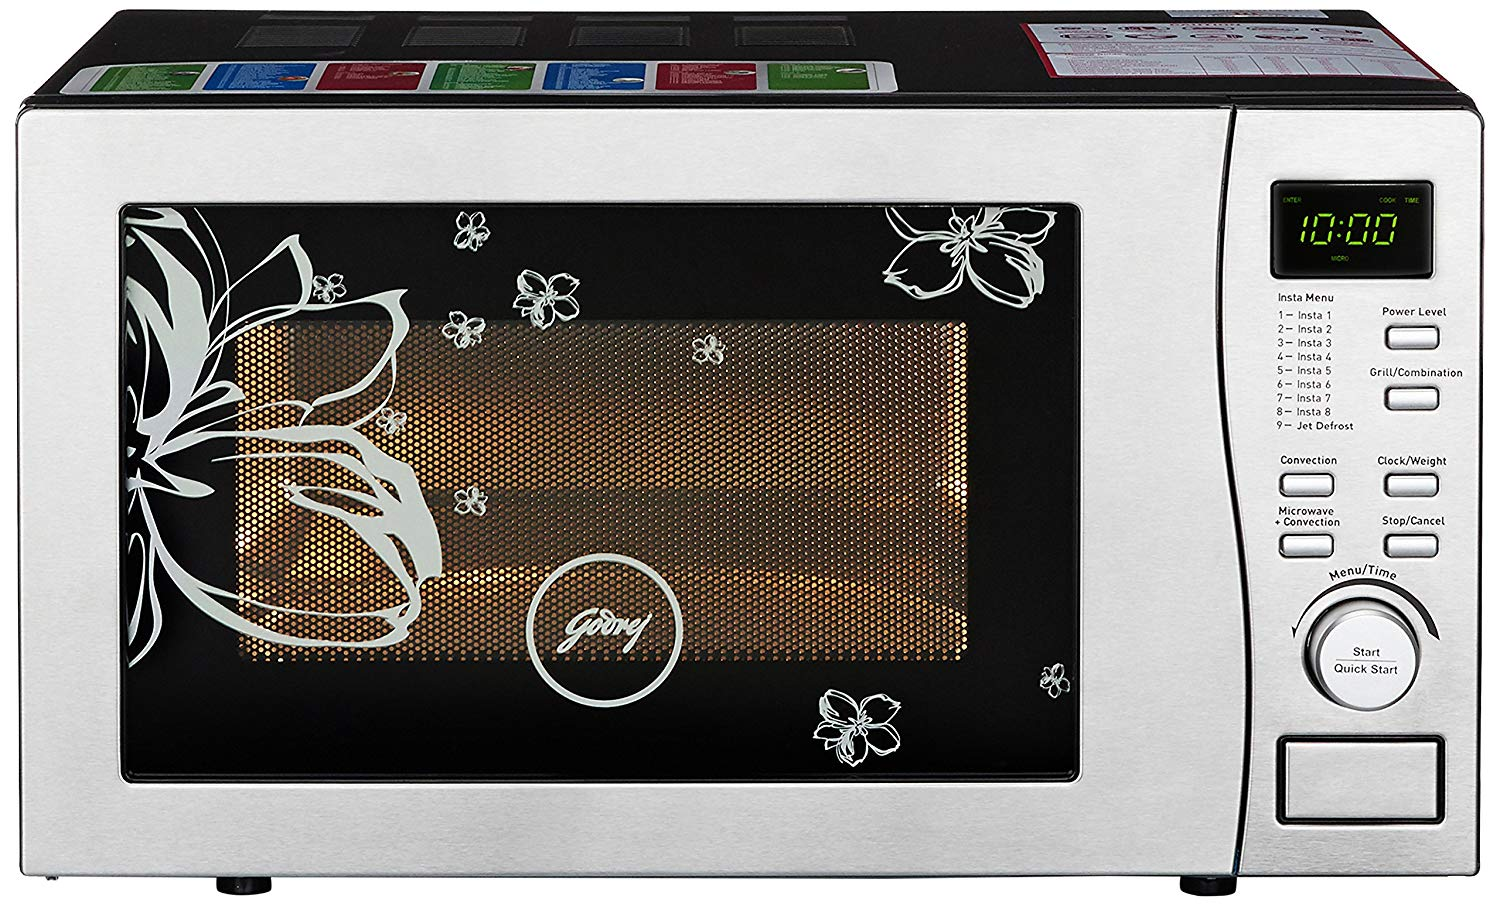 Godrej 19 L Convection Microwave Oven Reviews And Best